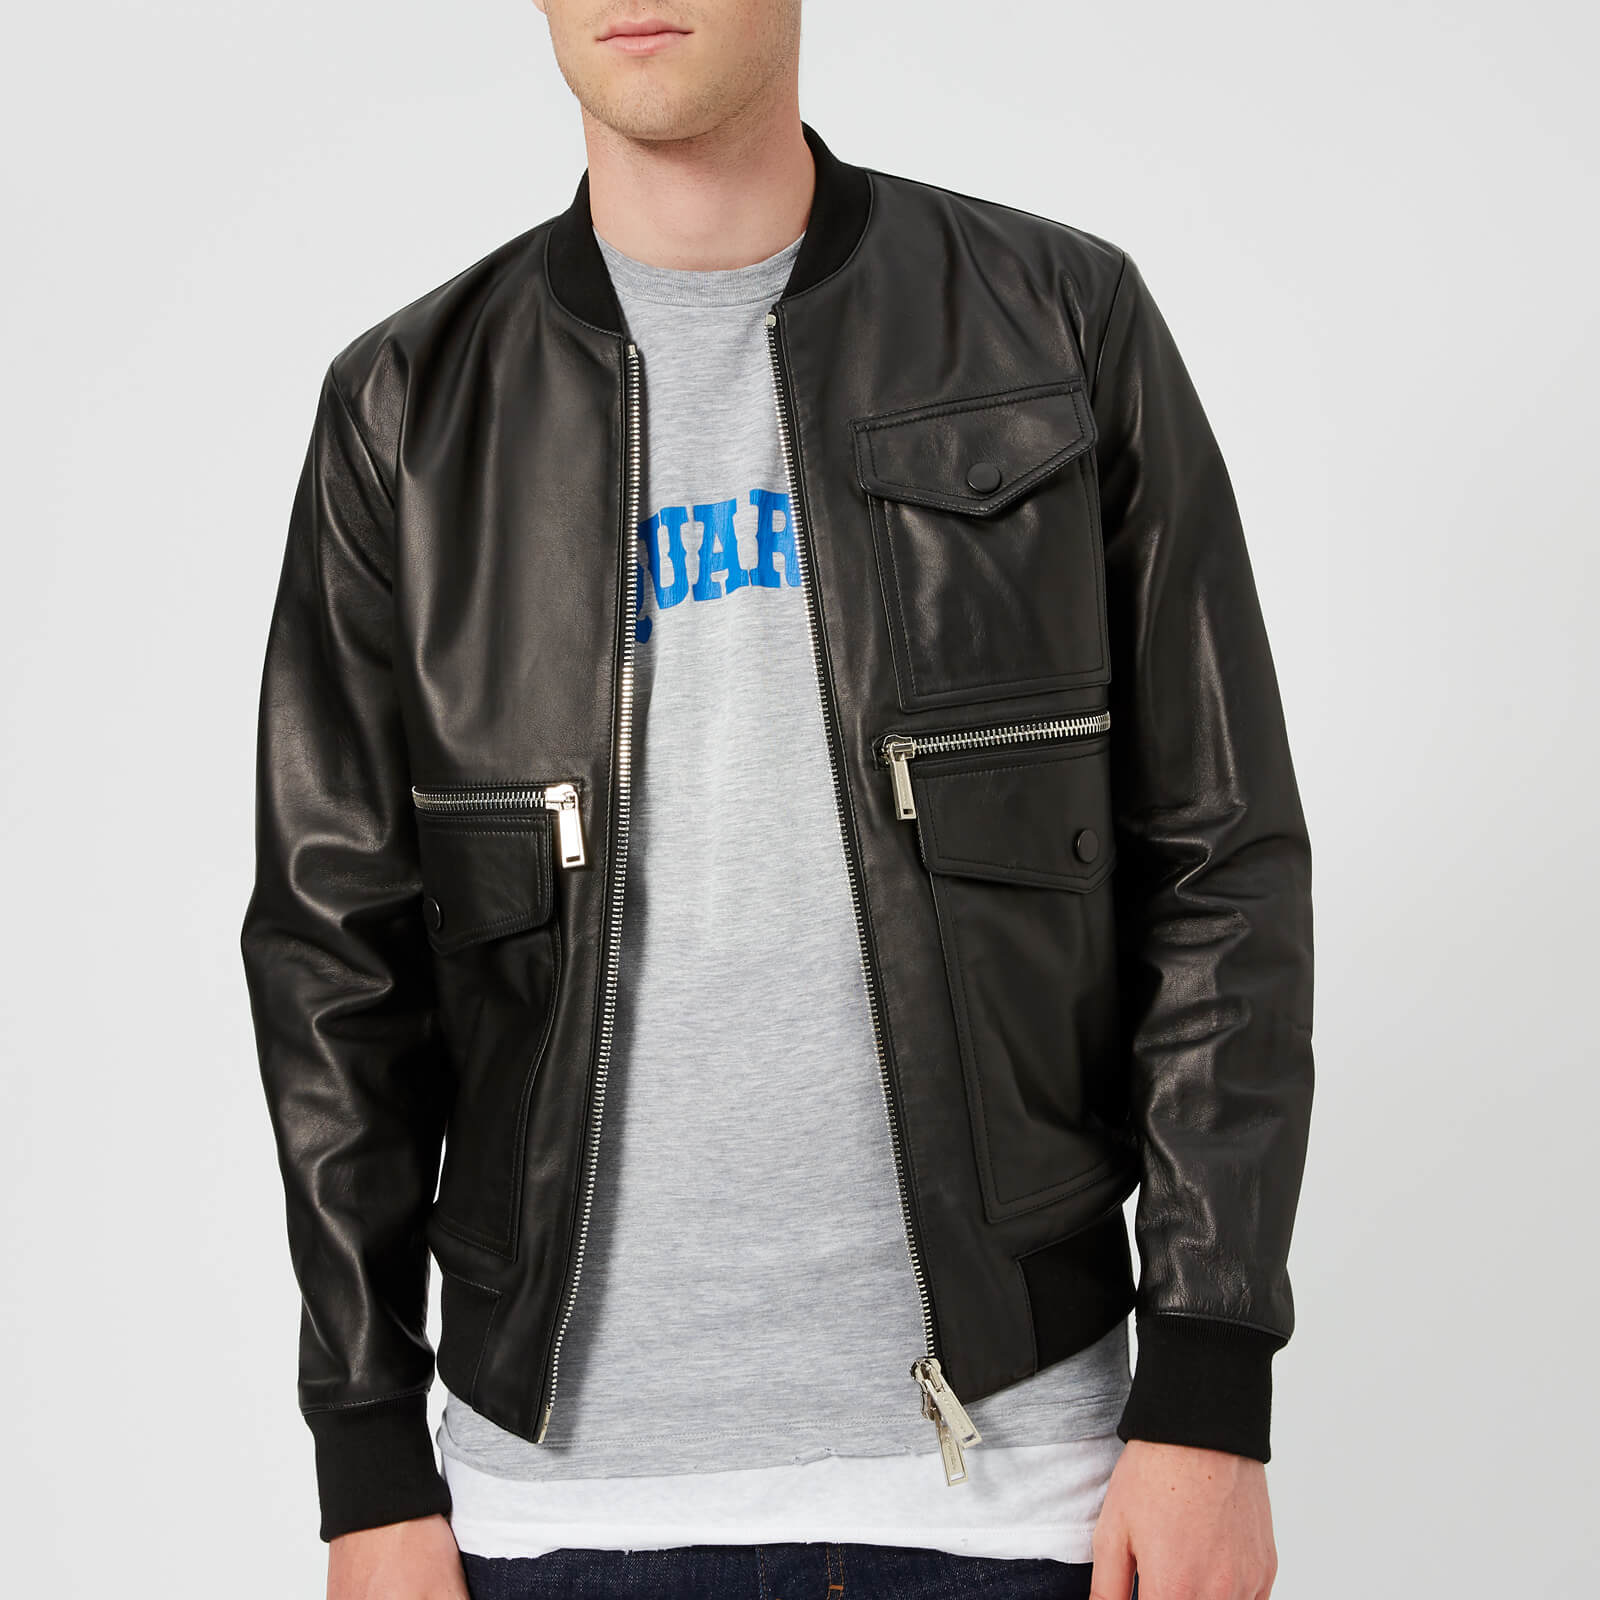 723e9df05a2 Dsquared2 Men s Lamb Leather Jacket - Black - Free UK Delivery over £50